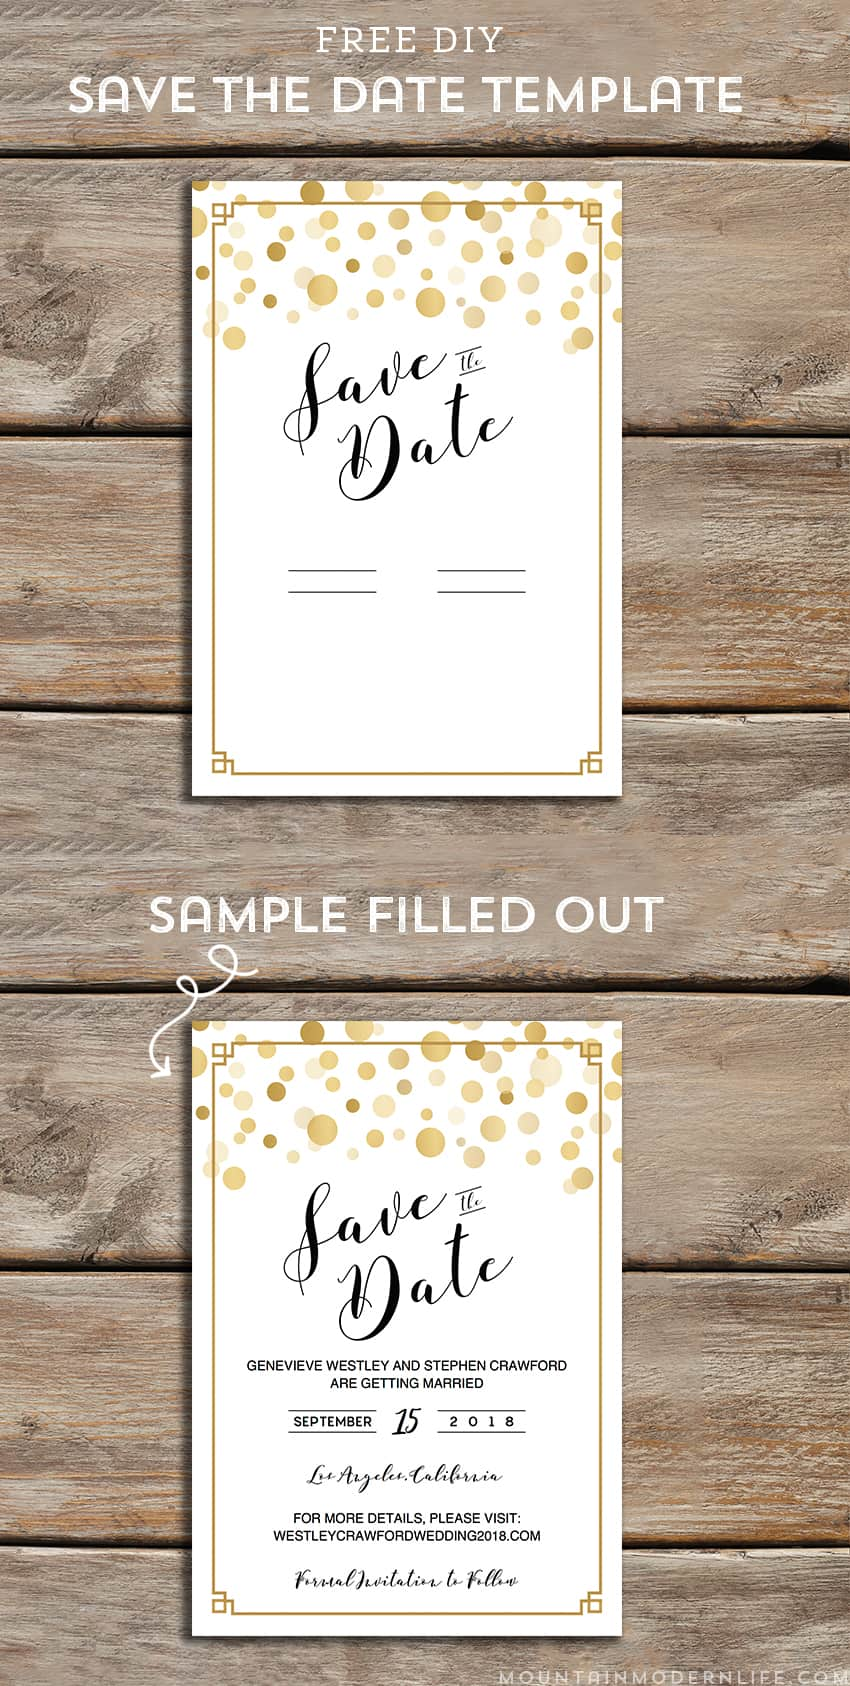 Massif image for printable save the dates templates